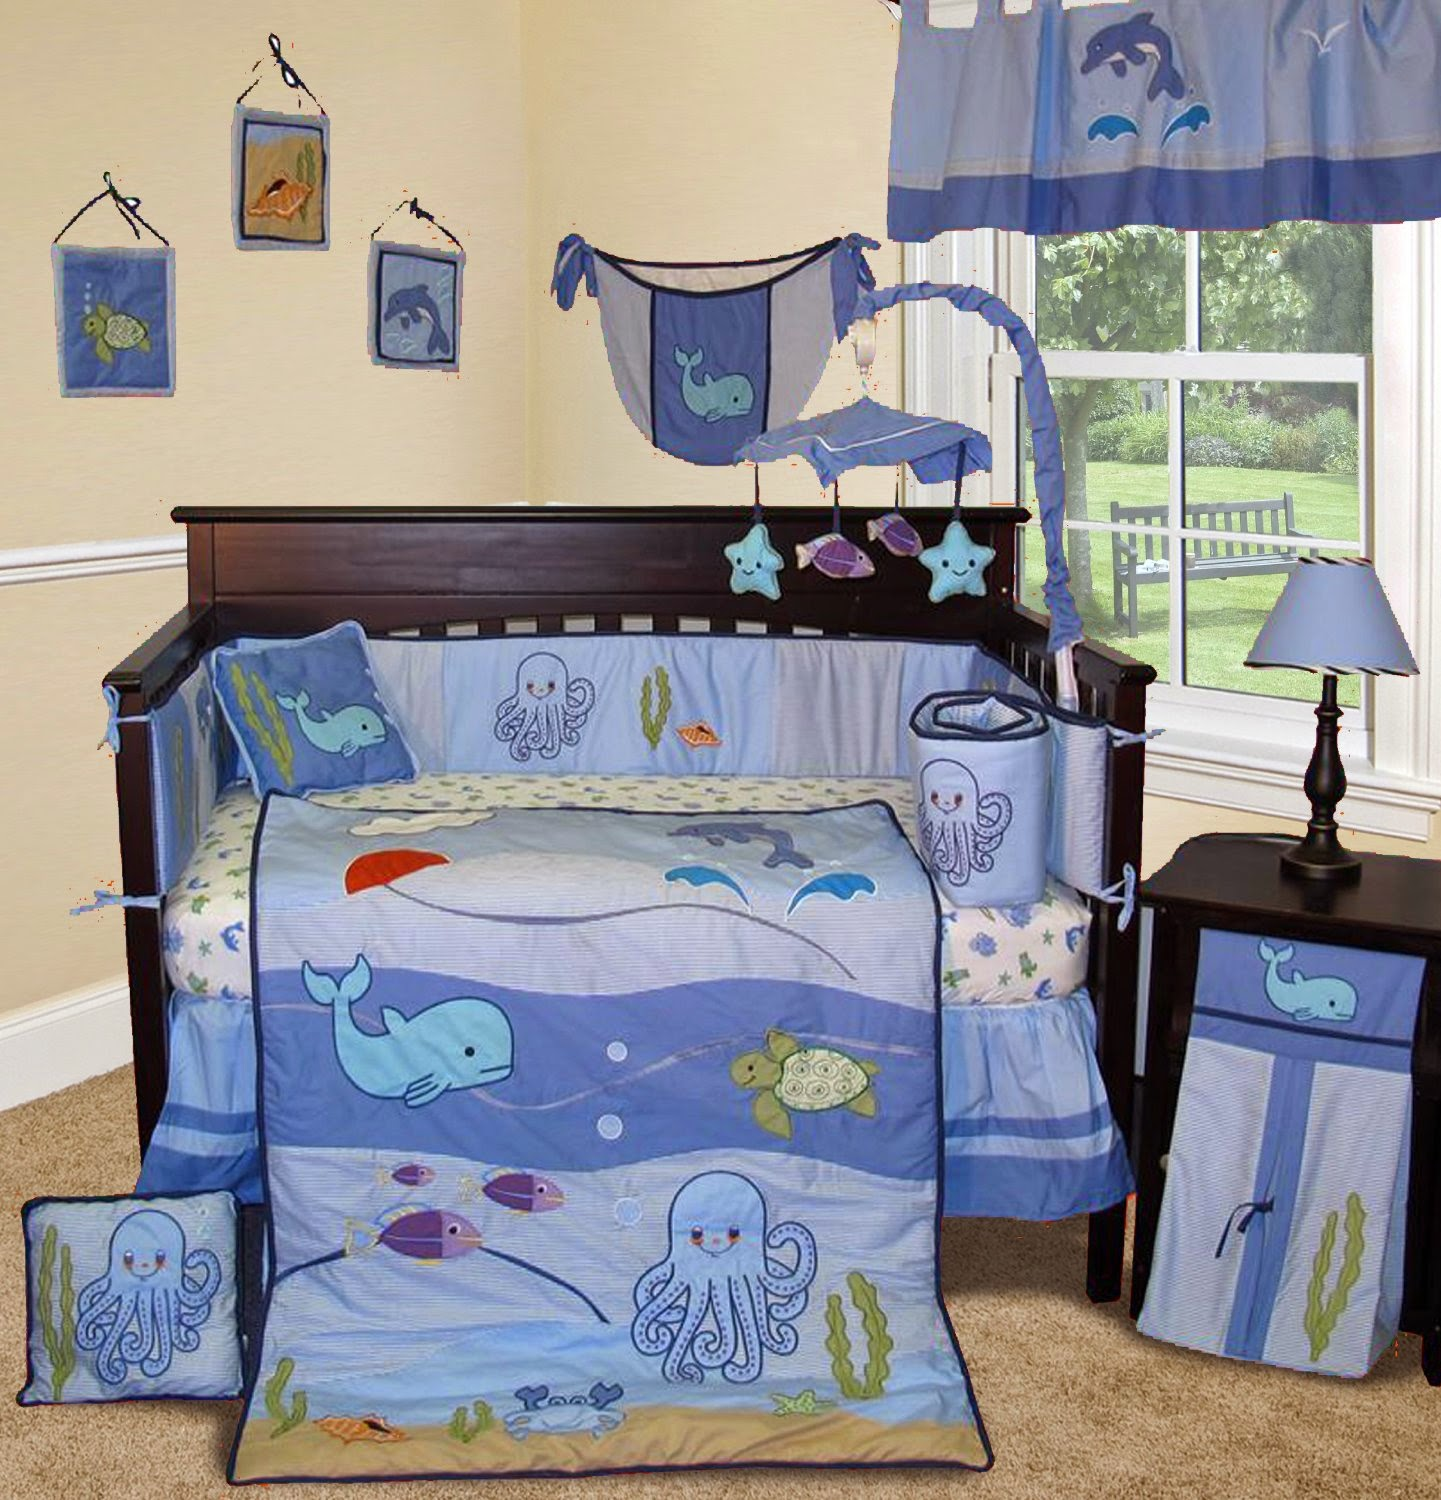 Vegan Mom Blog TheRightOnMom.com: Baby Room Decorating ...